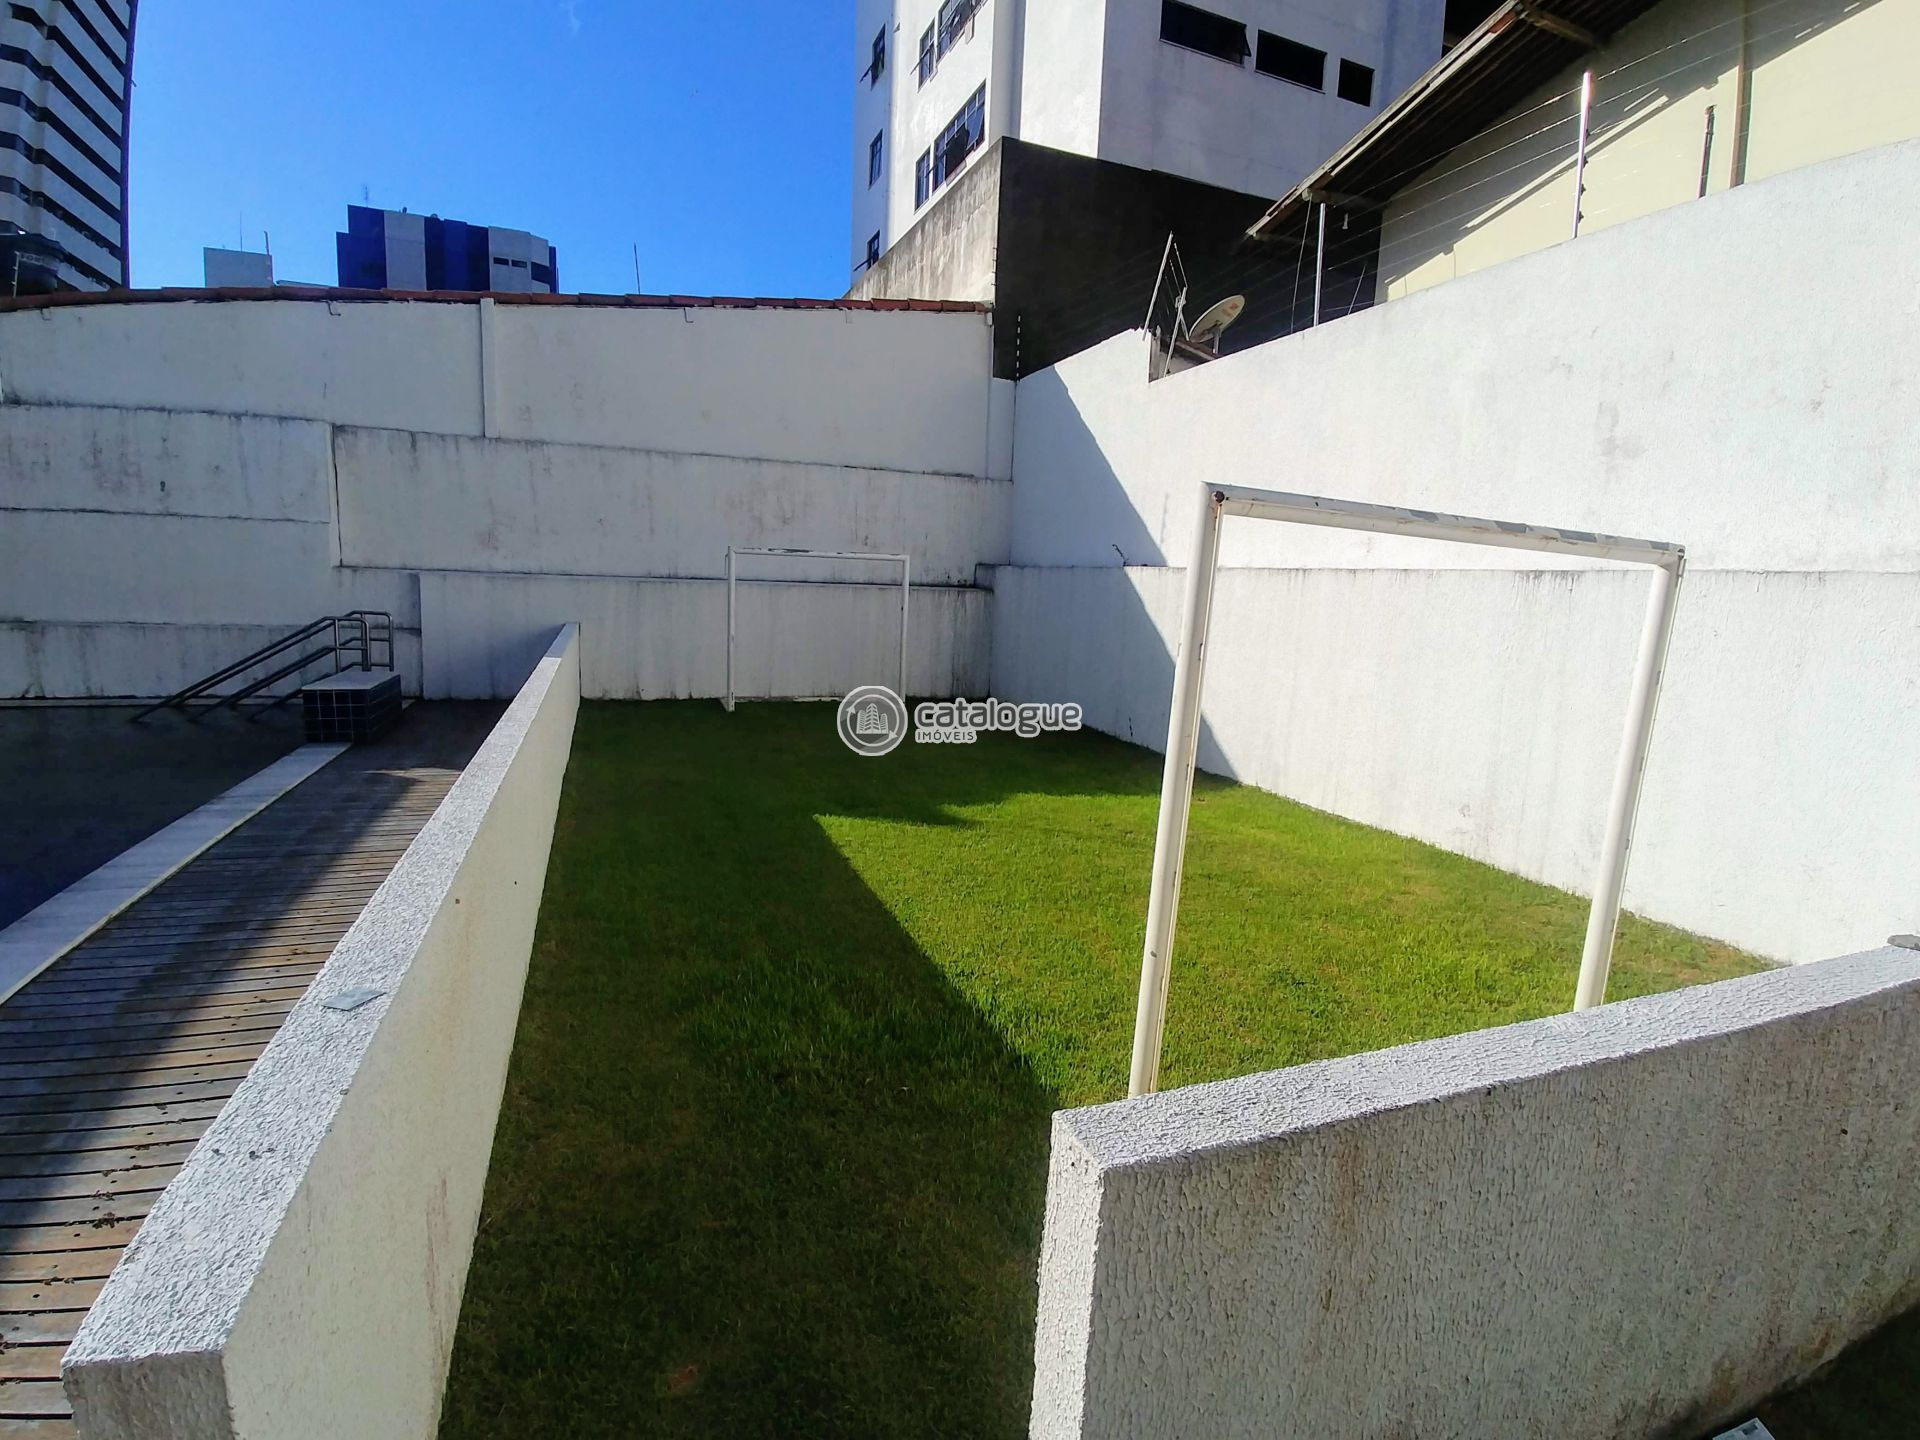 FOTO 17 - Residencial Lincoln - 0661 - 5